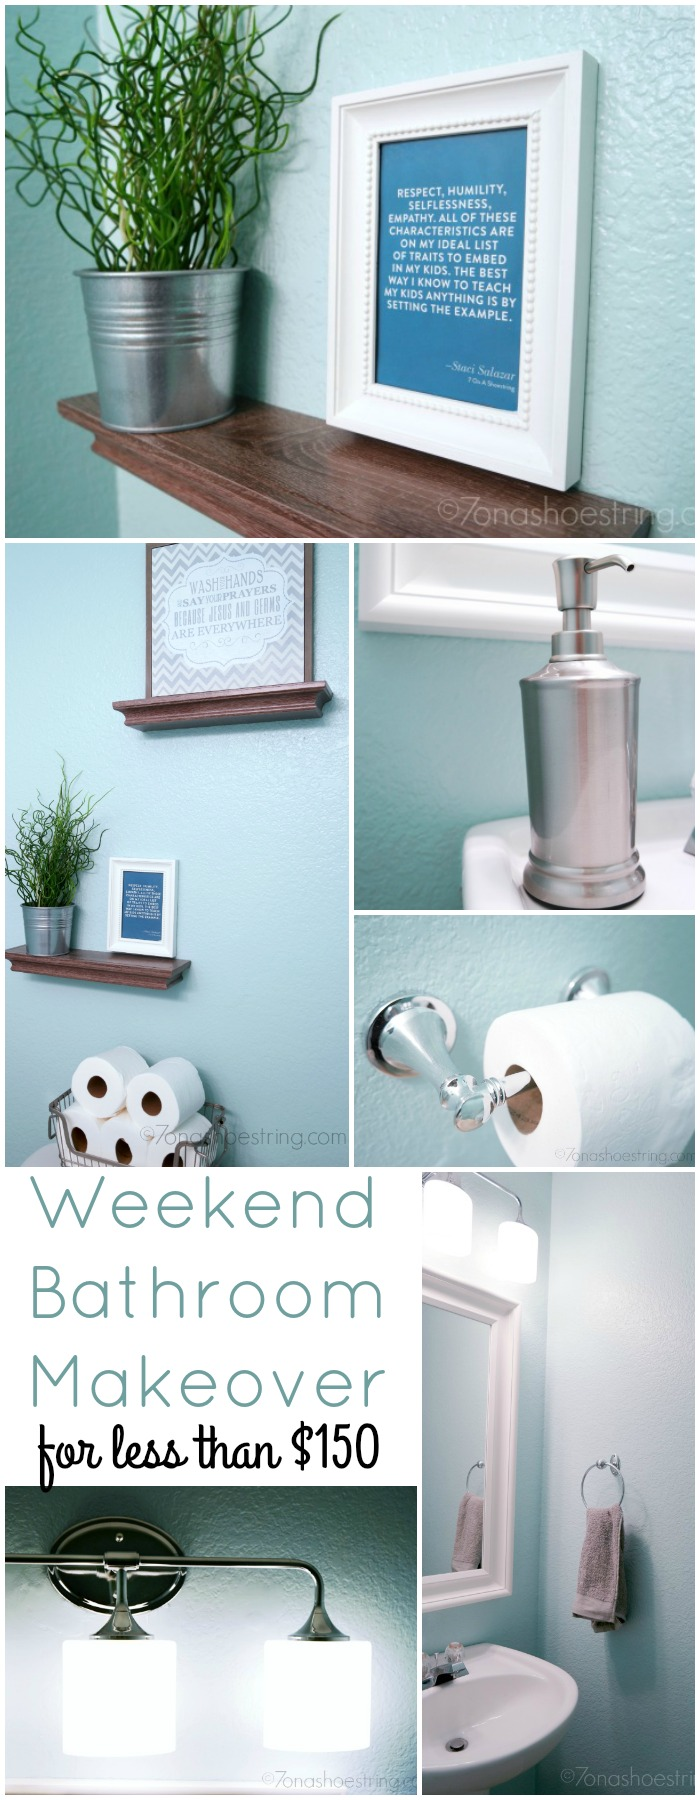 Weekend Bathroom Makeover for less than $150